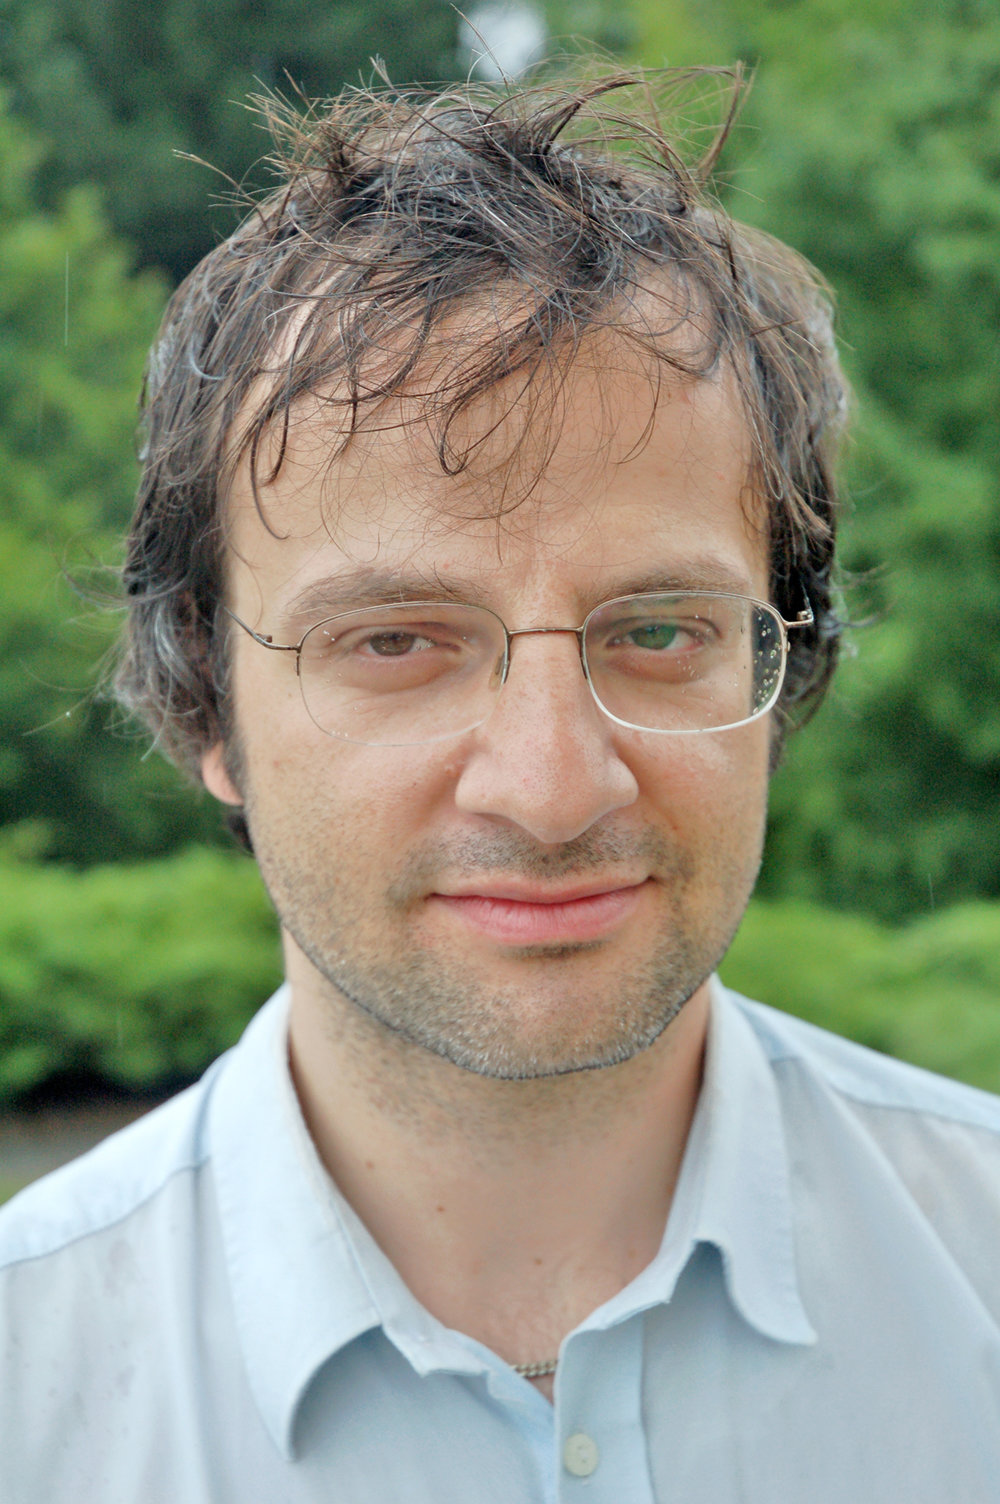 Serhat Karakayali - researcher, author